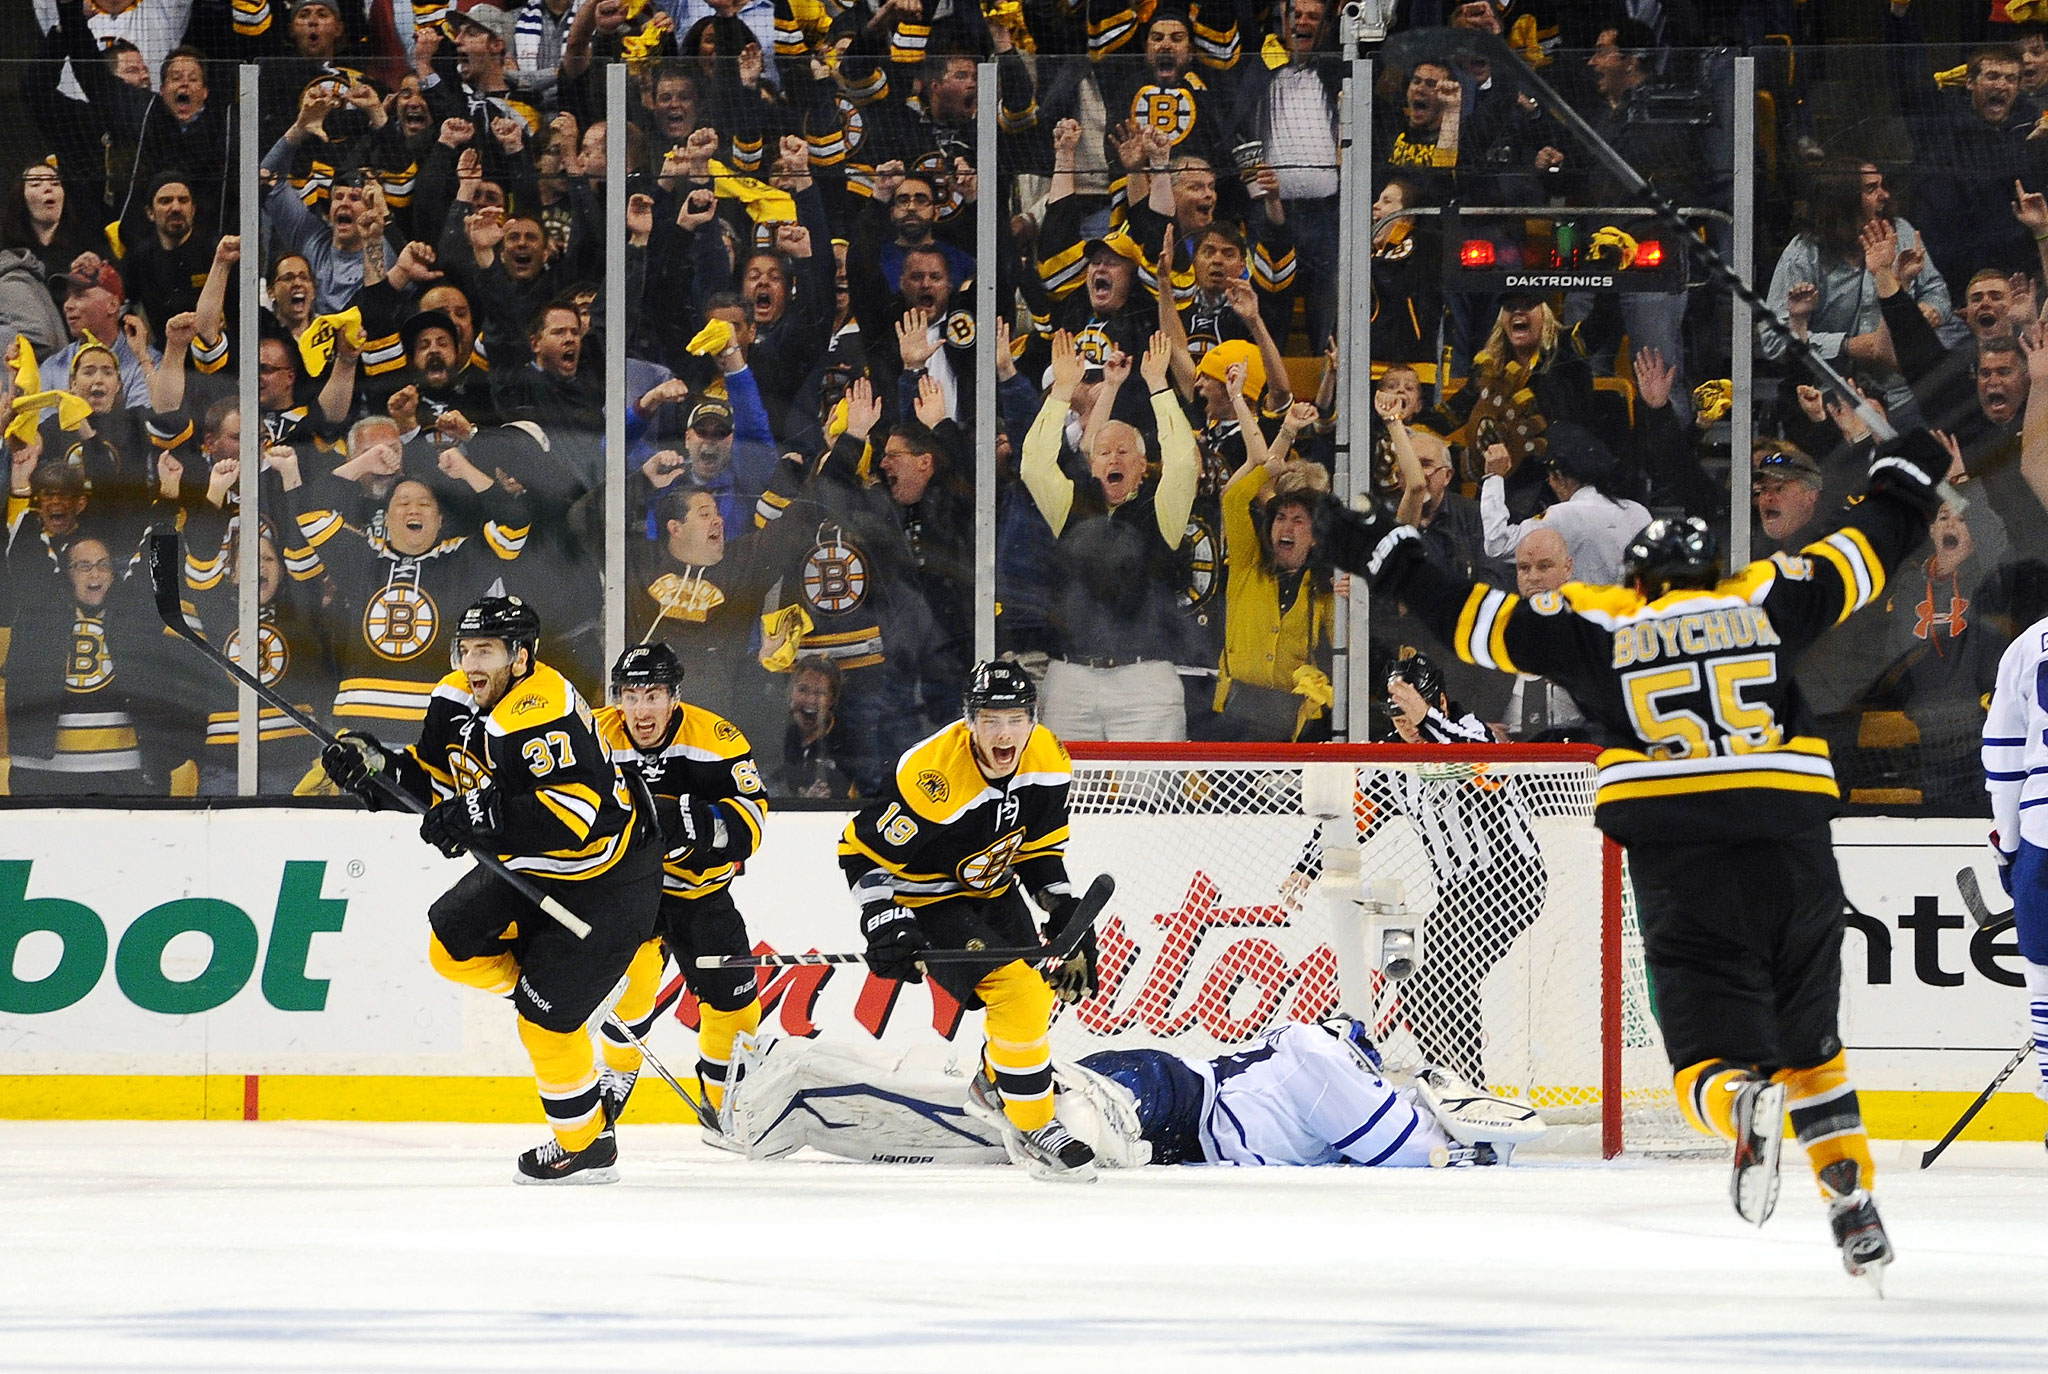 7. Bruins Rally To Beat Leafs in Game 7